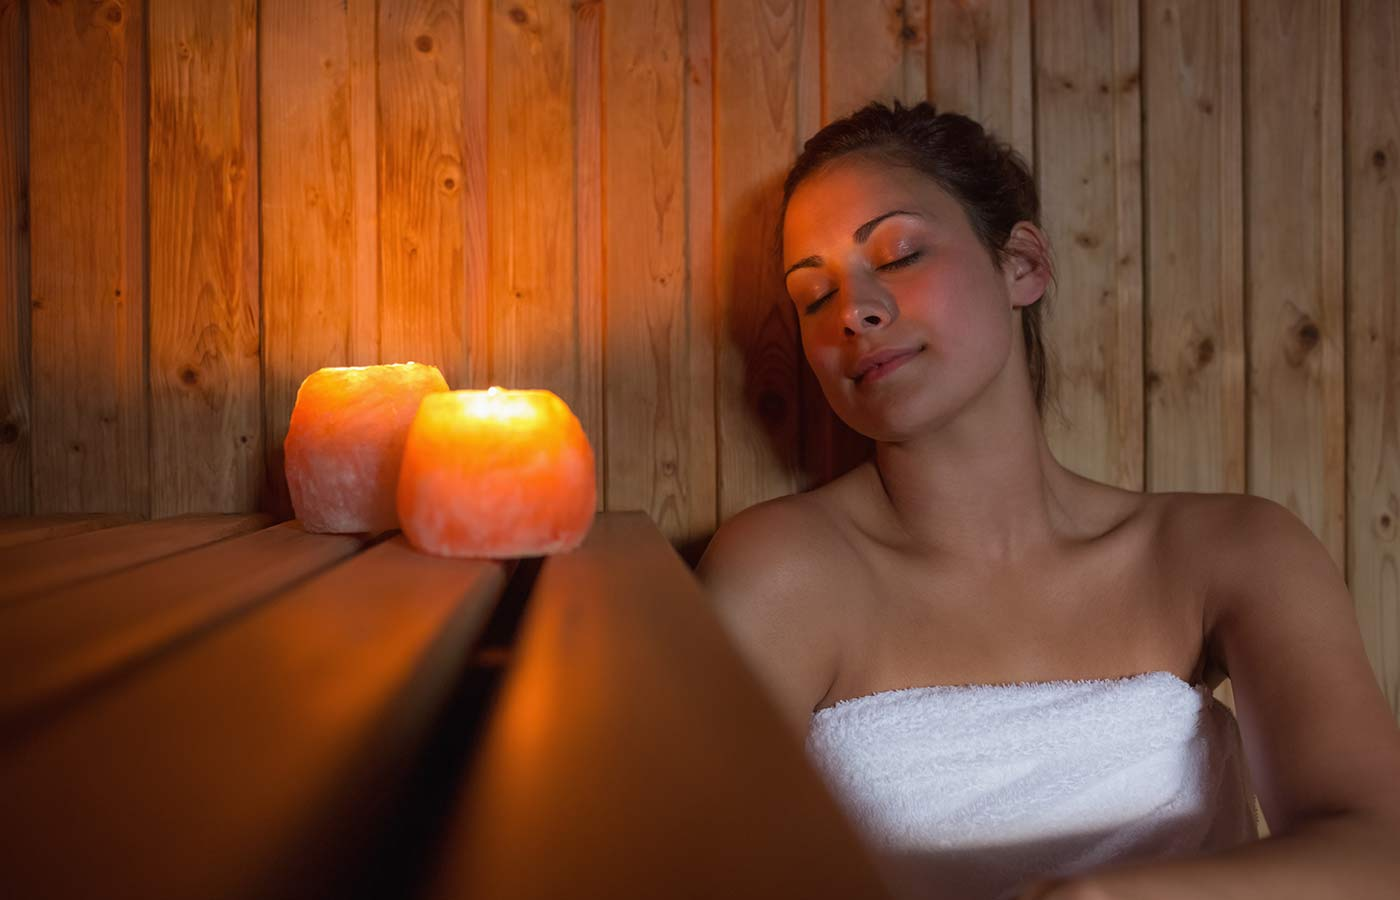 Girl relaxing in a sauna with her eyes closed by candlelight